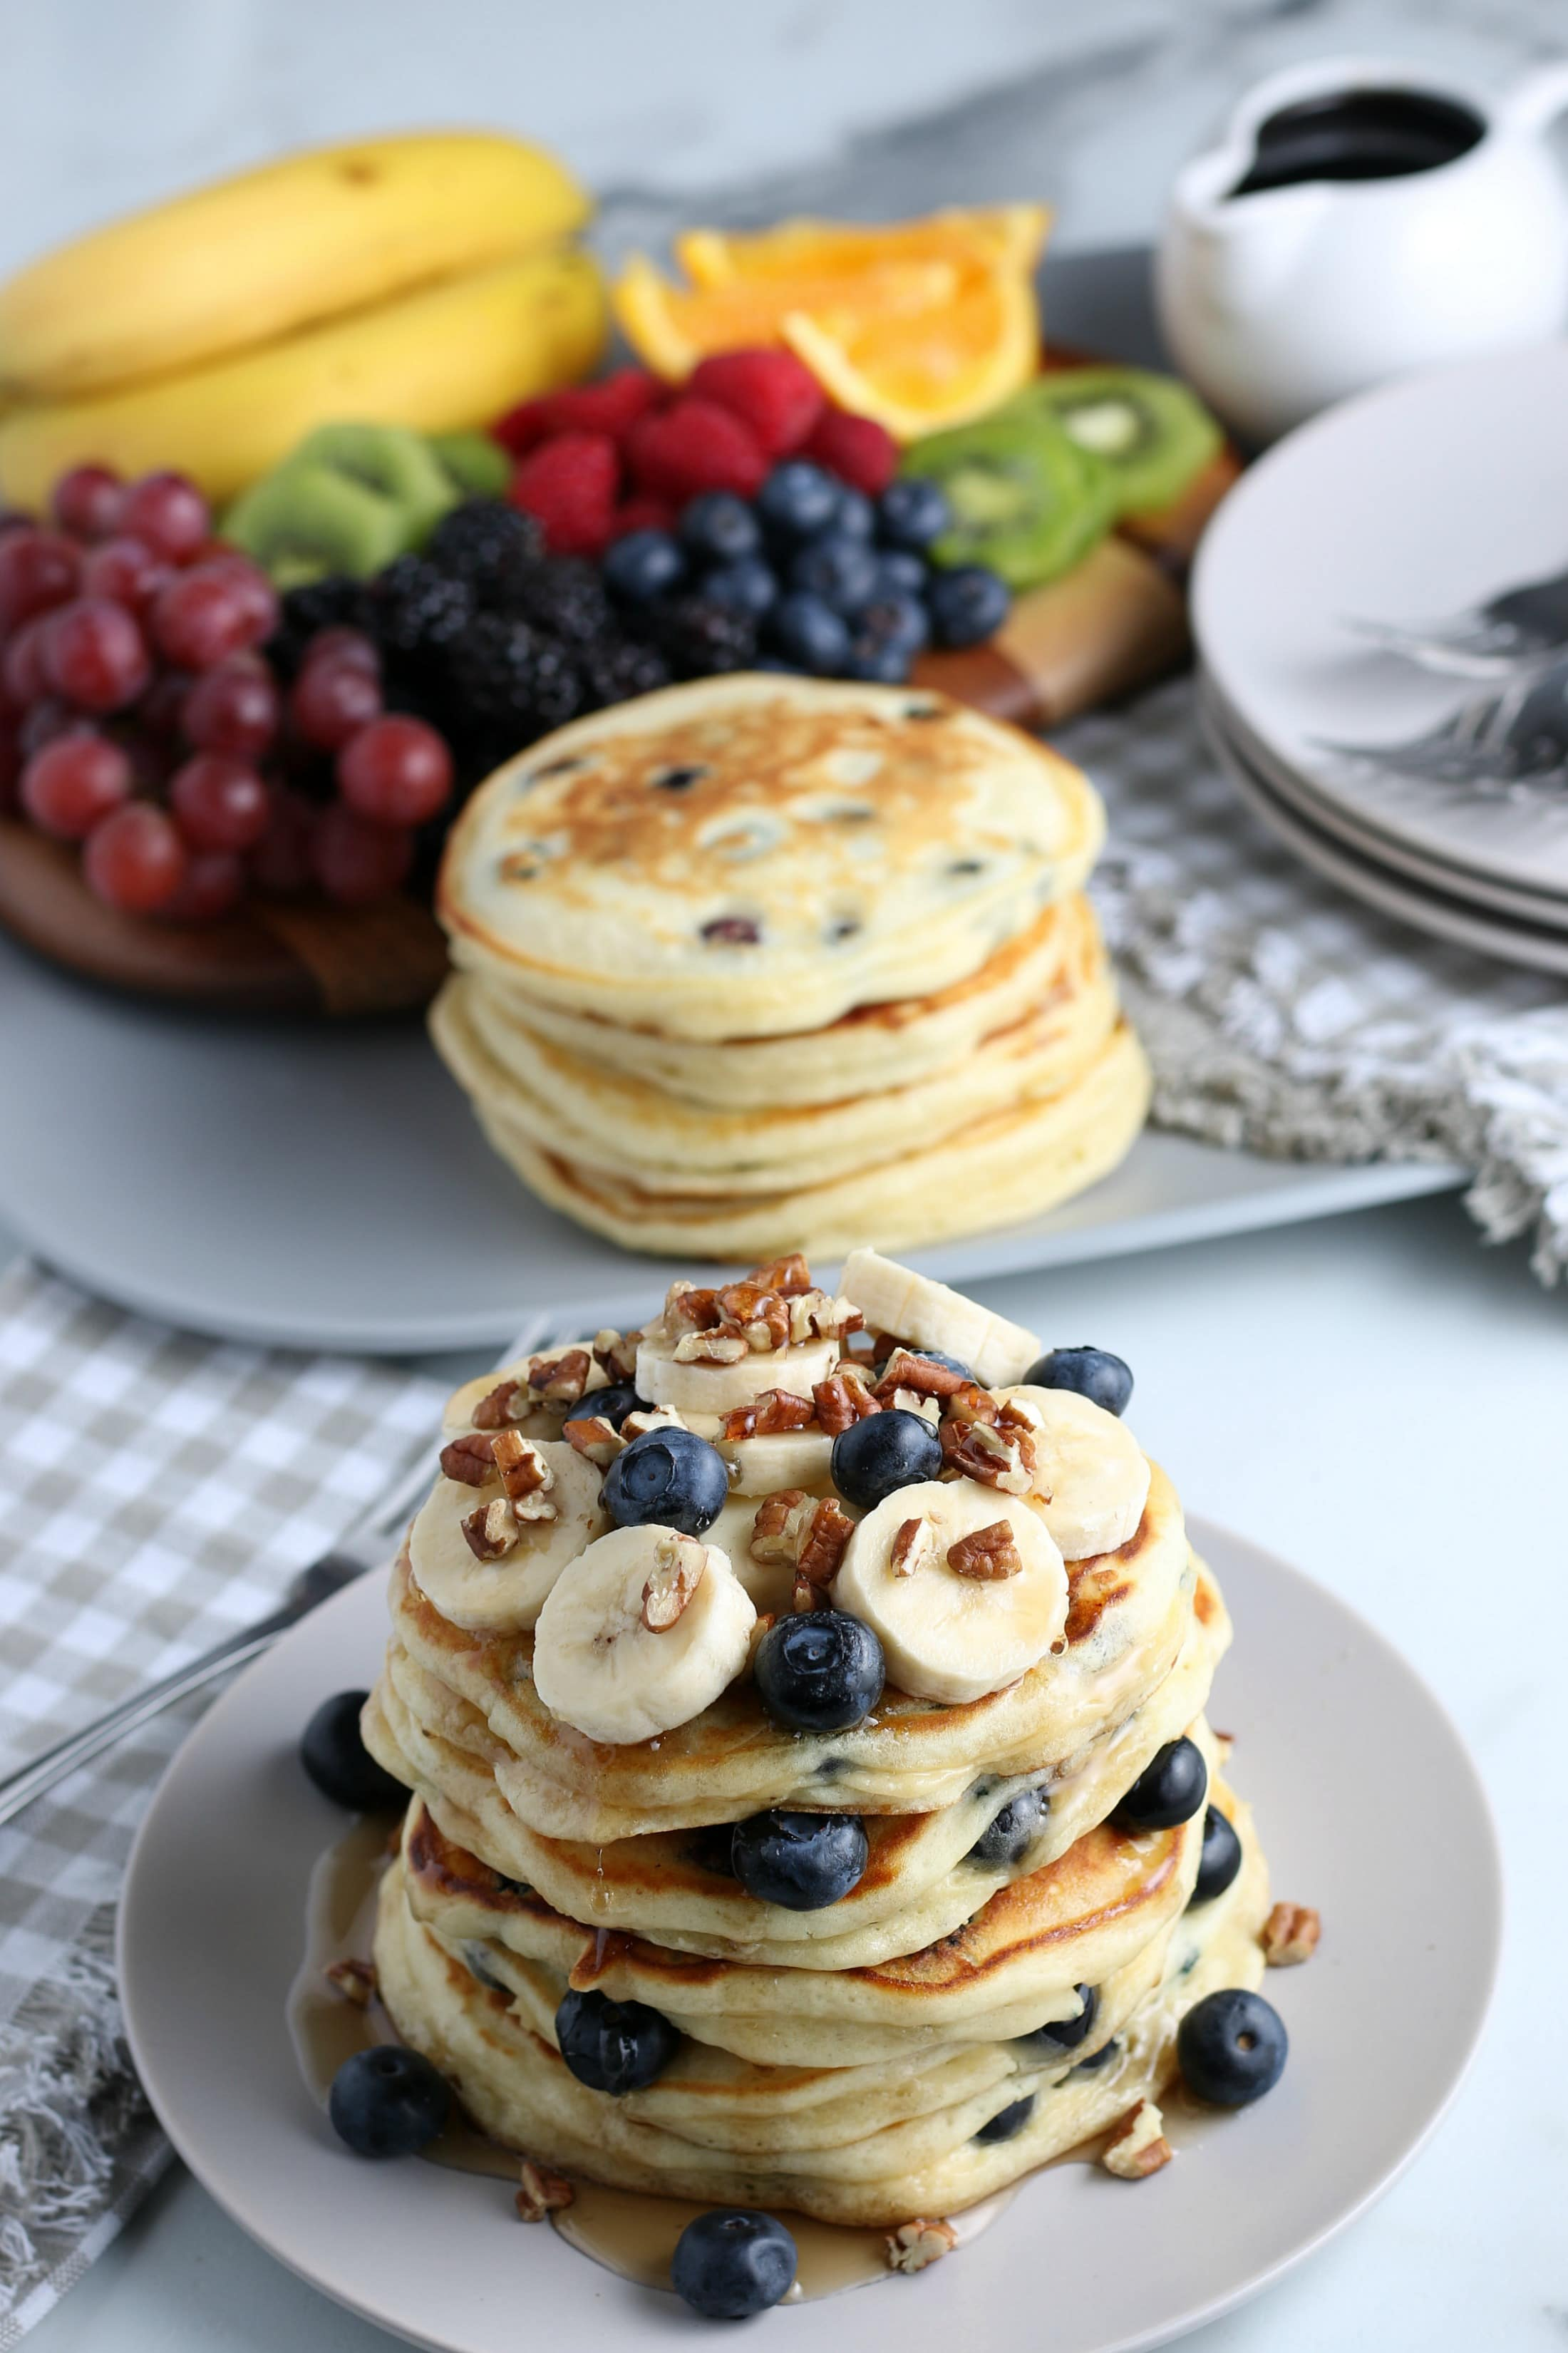 A stack of blueberry pancakes with fruit n the background.